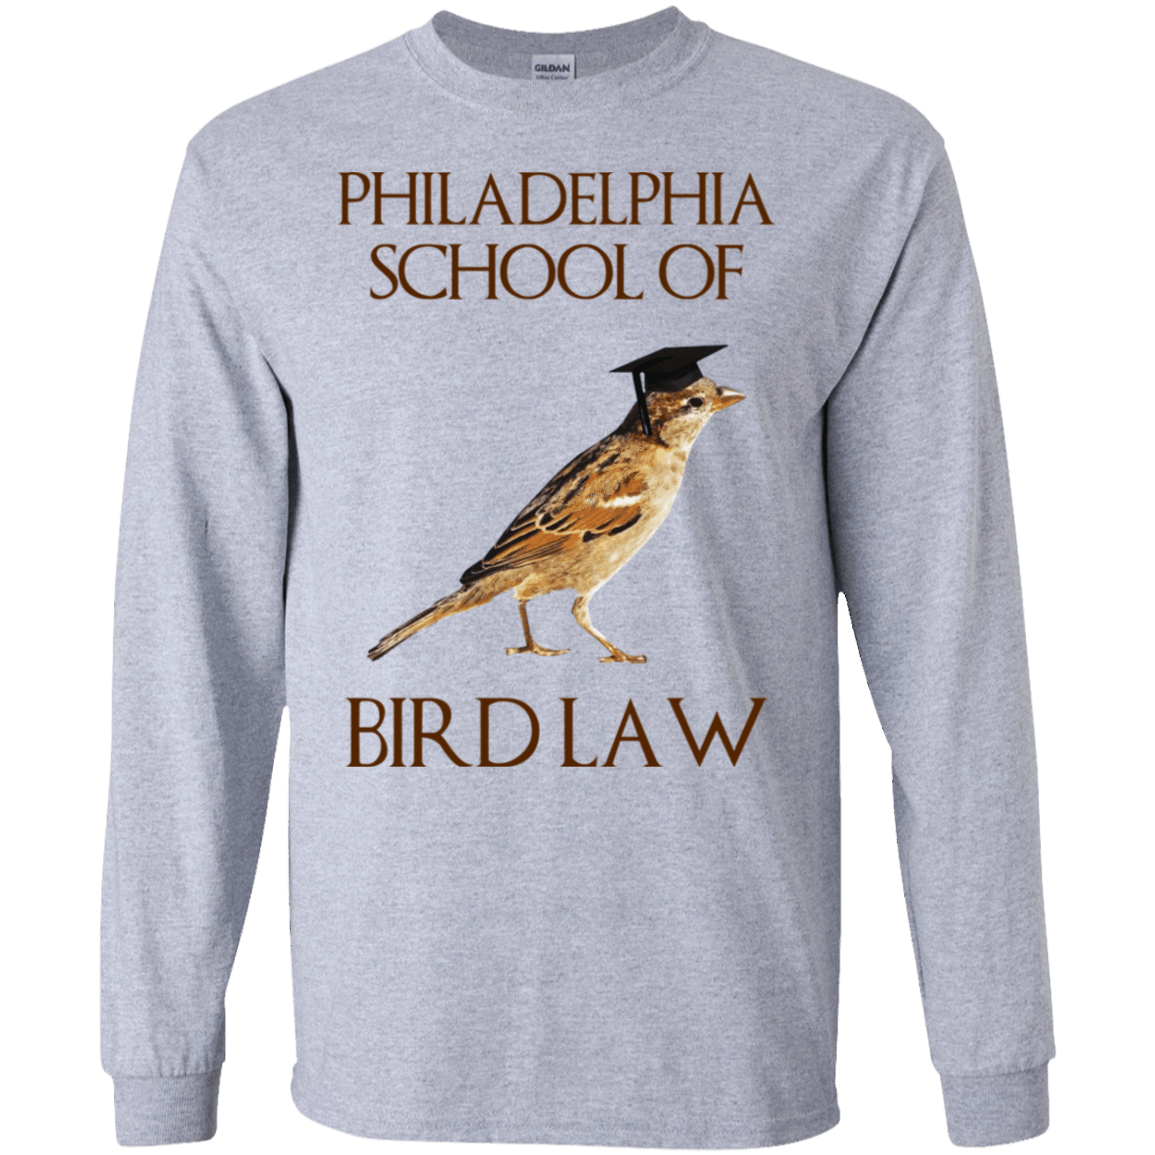 Philadelphia School of Bird Law 30-188-73057594-335 - Tee Ript